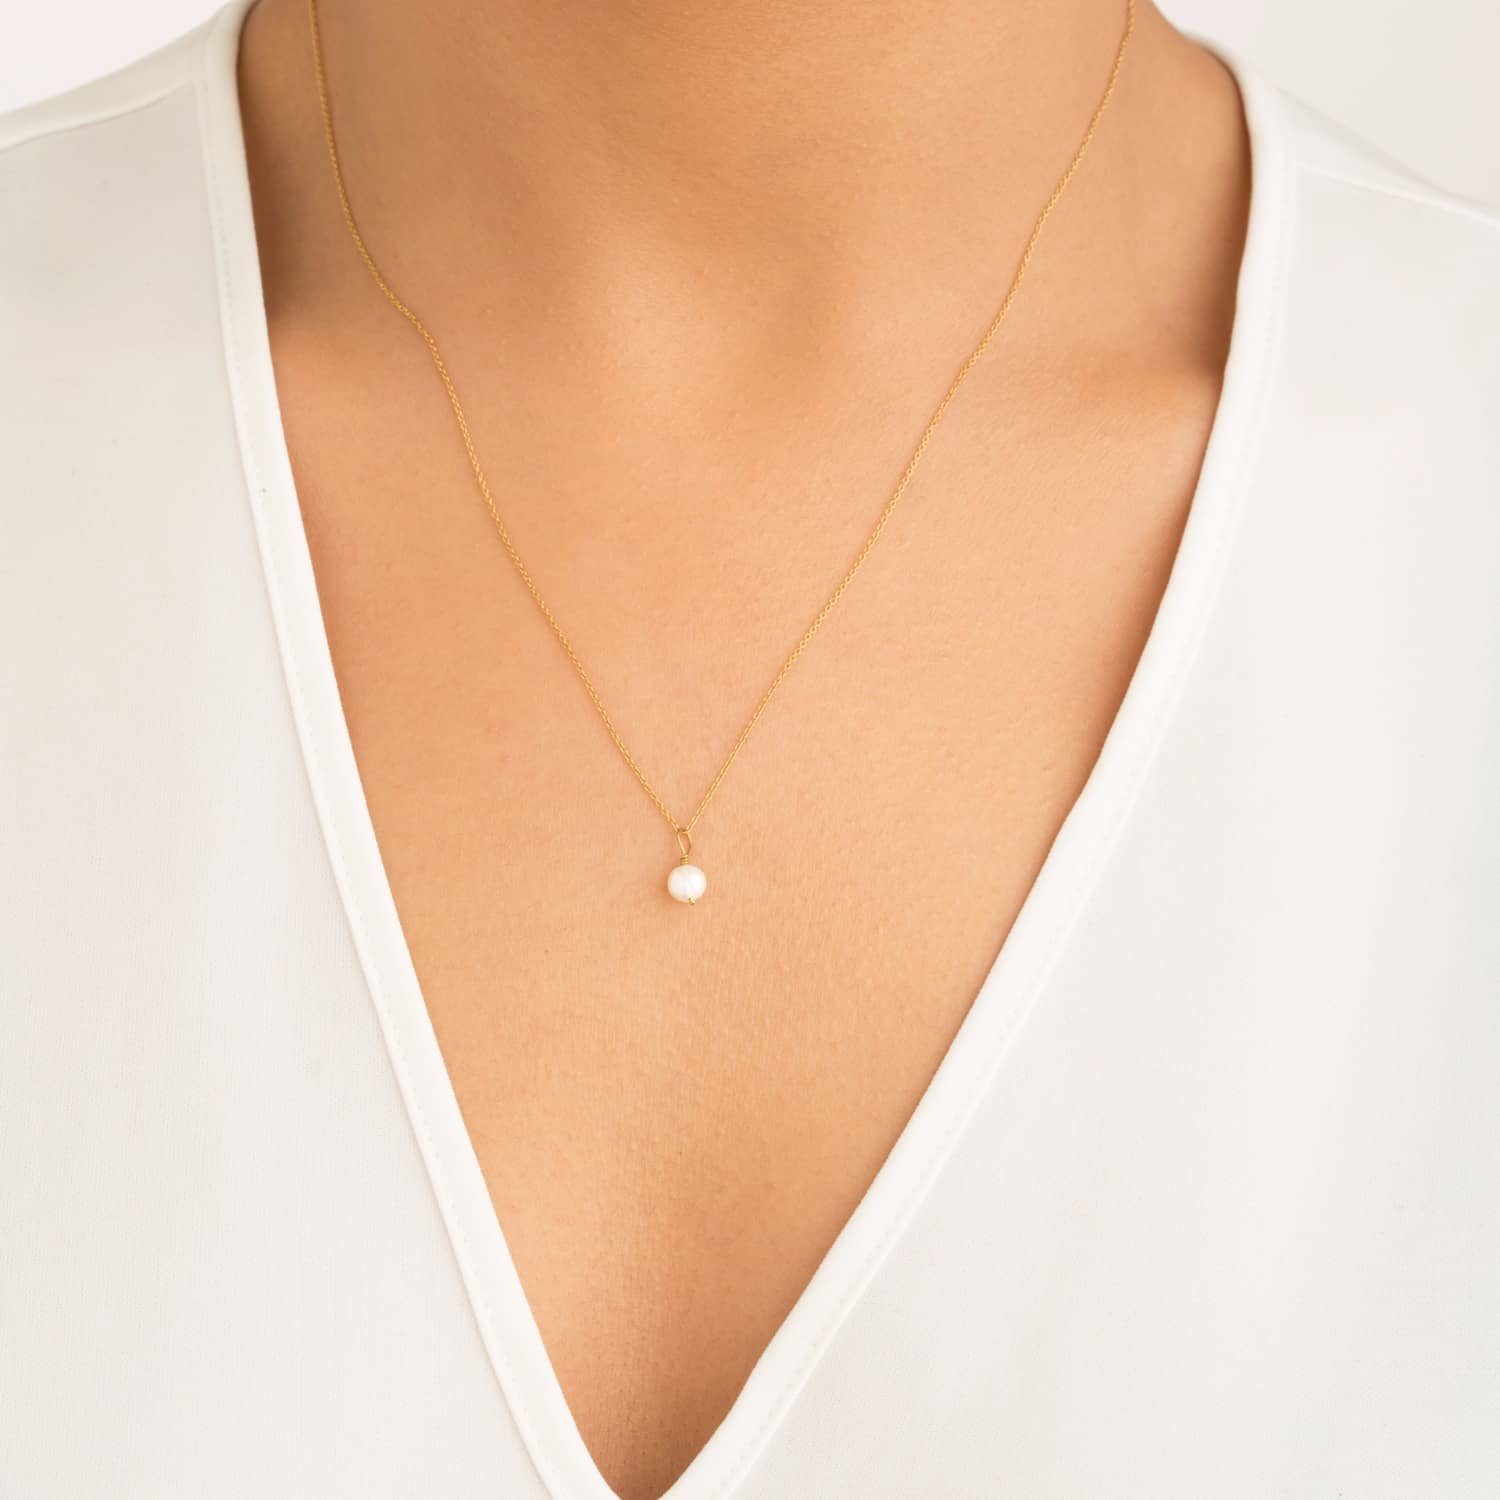 akoya one view quick cultured strand necklace p aa single pearl necklaces sku saltwater white